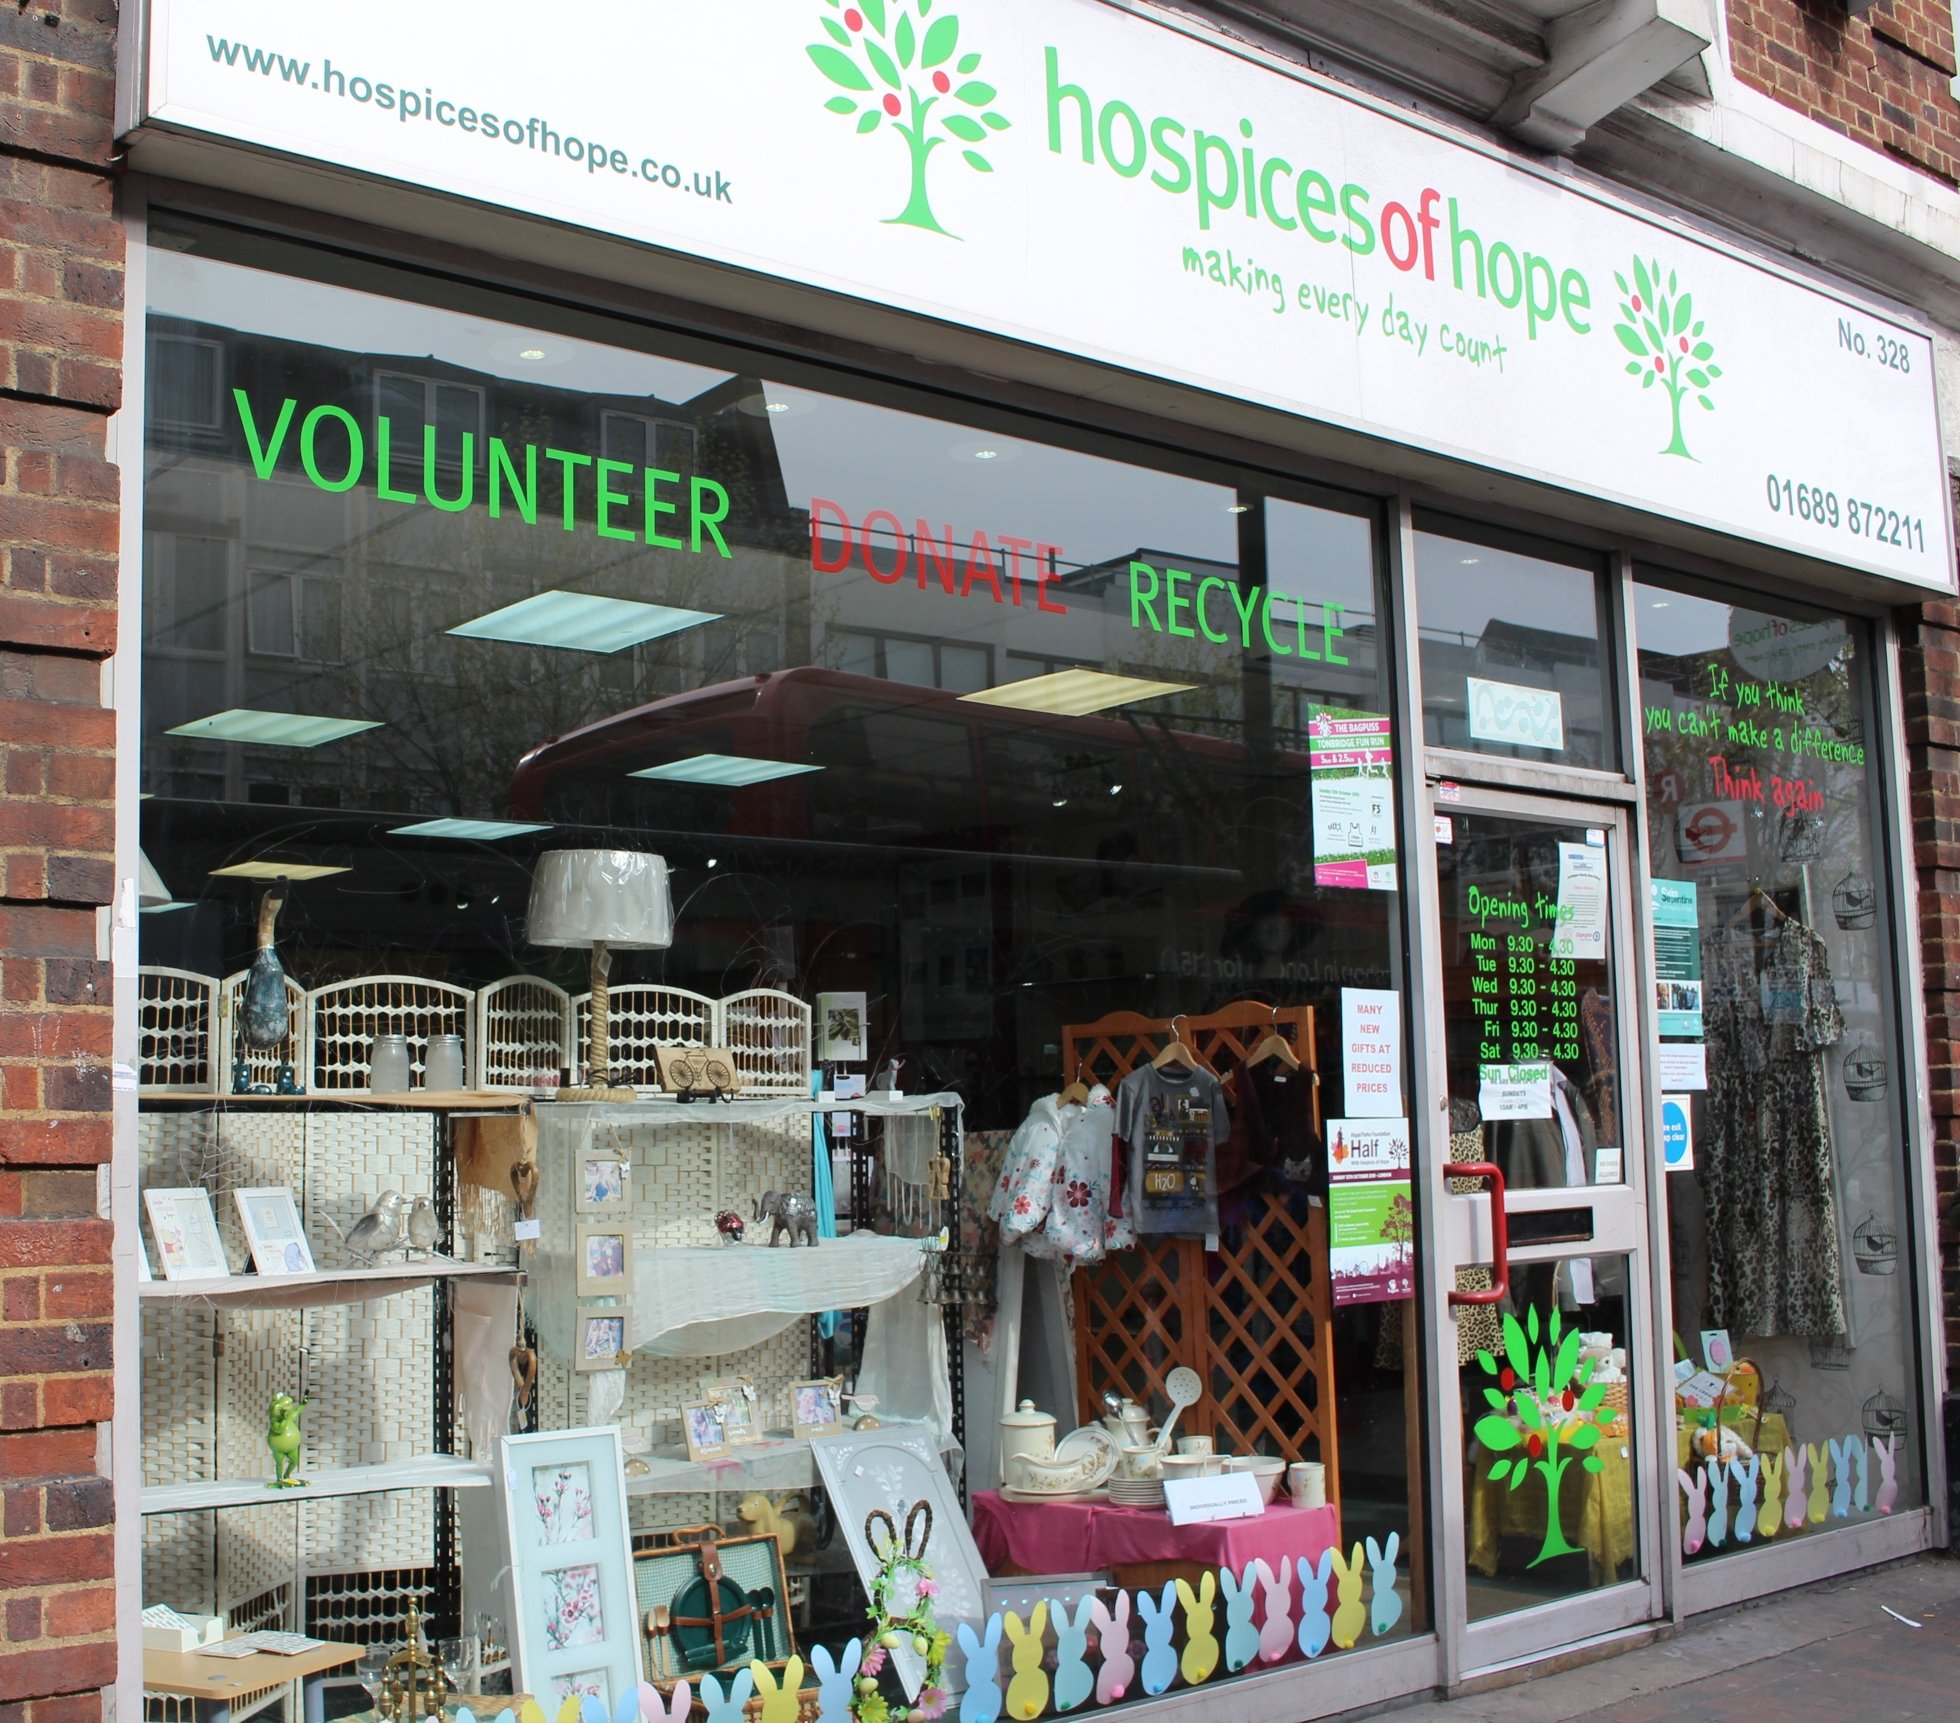 Orpington Hospices Of Hope